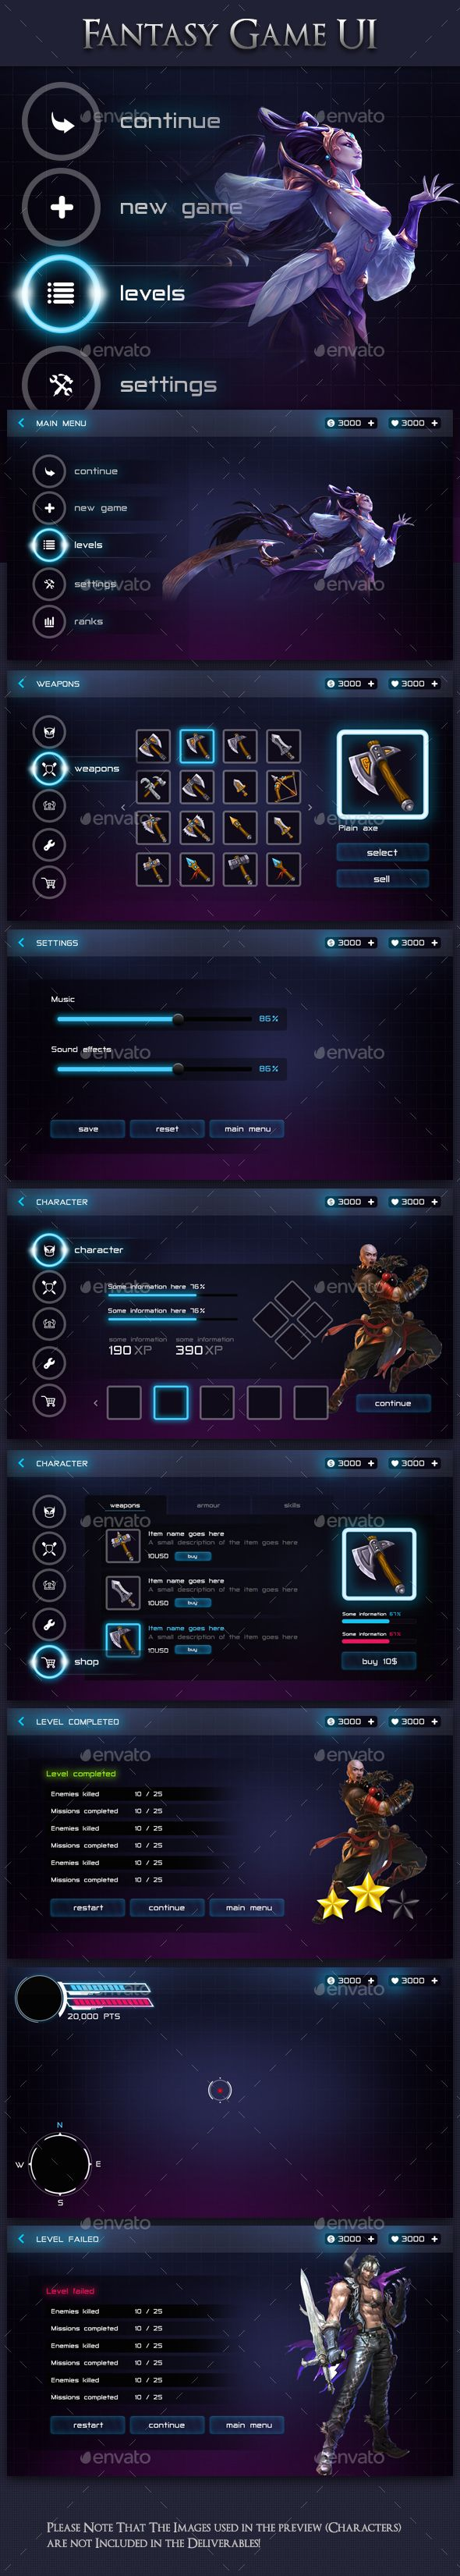 Modern Fantasy Game UI Kit